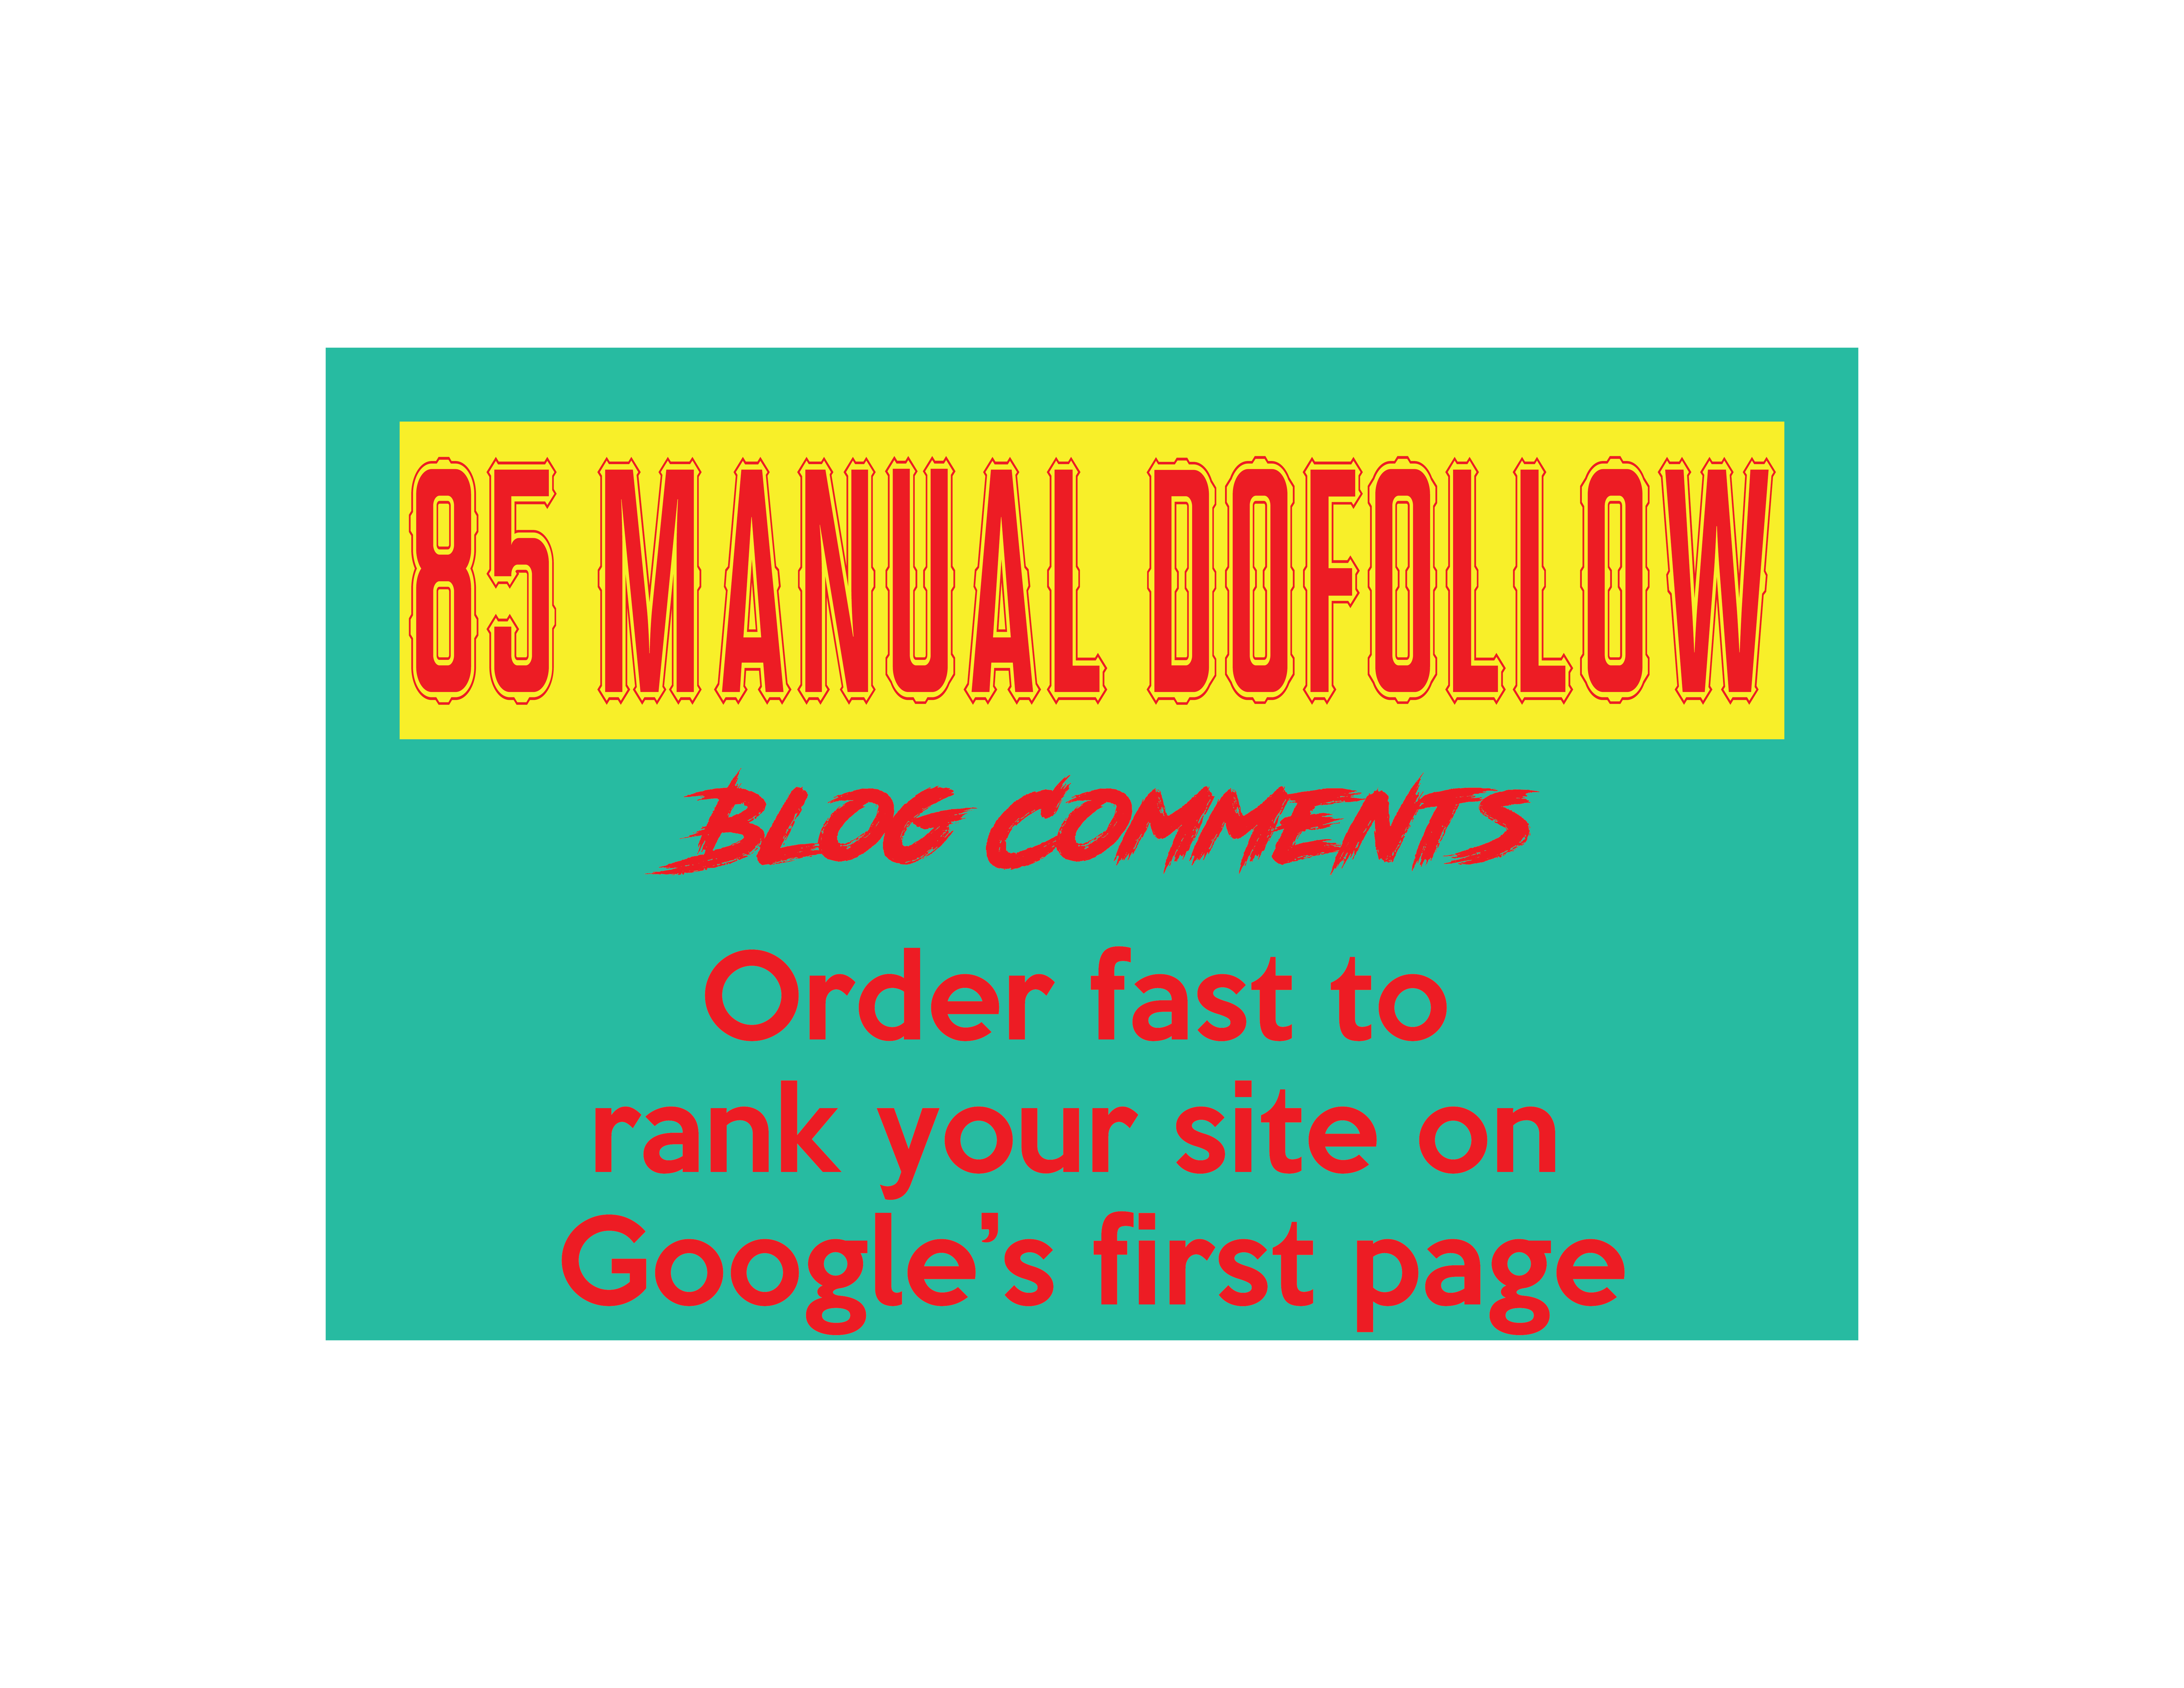 85 manual dofollow blog comments DA almost 40+